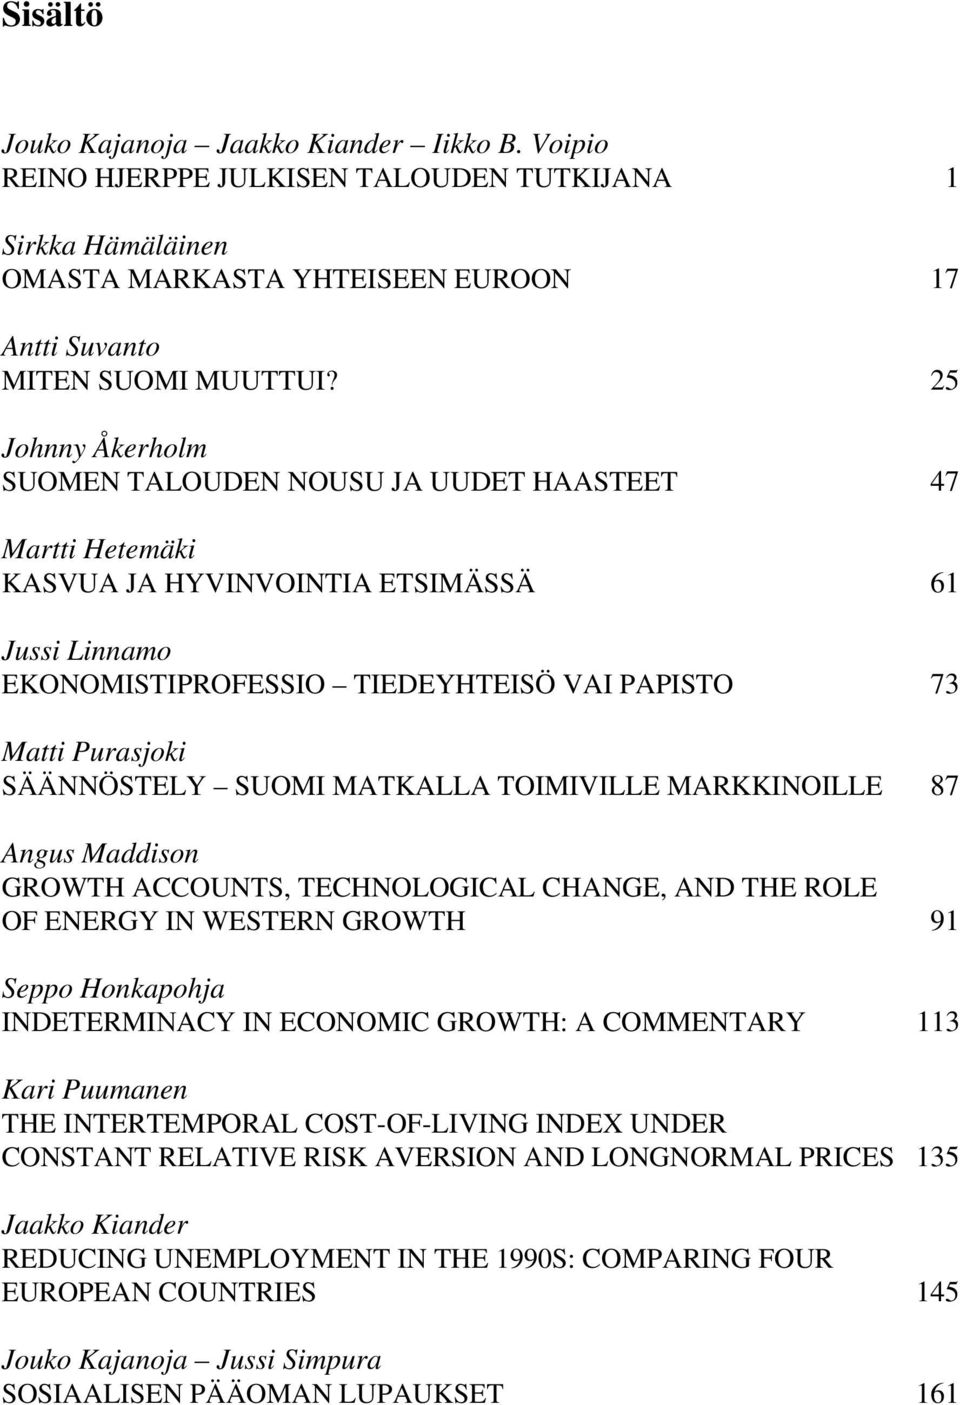 SÄÄNNÖSTELY SUOMI MATKALLA TOIMIVILLE MARKKINOILLE 87 Angus Maddison GROWTH ACCOUNTS, TECHNOLOGICAL CHANGE, AND THE ROLE OF ENERGY IN WESTERN GROWTH 91 Seppo Honkapohja INDETERMINACY IN ECONOMIC